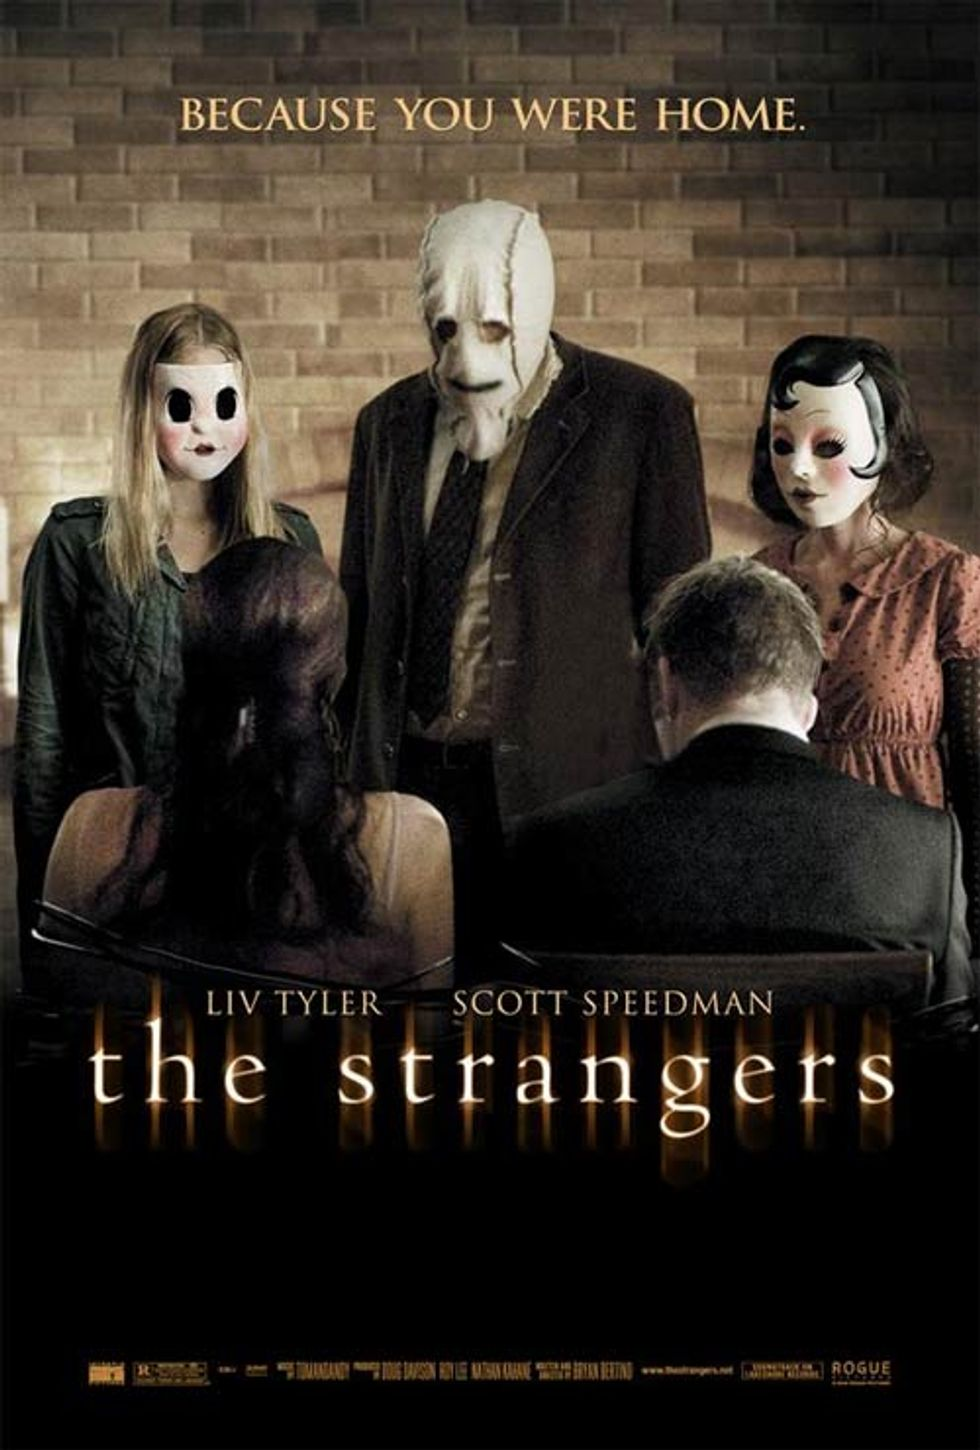 The Strangers Is an Unsettling Creepfest